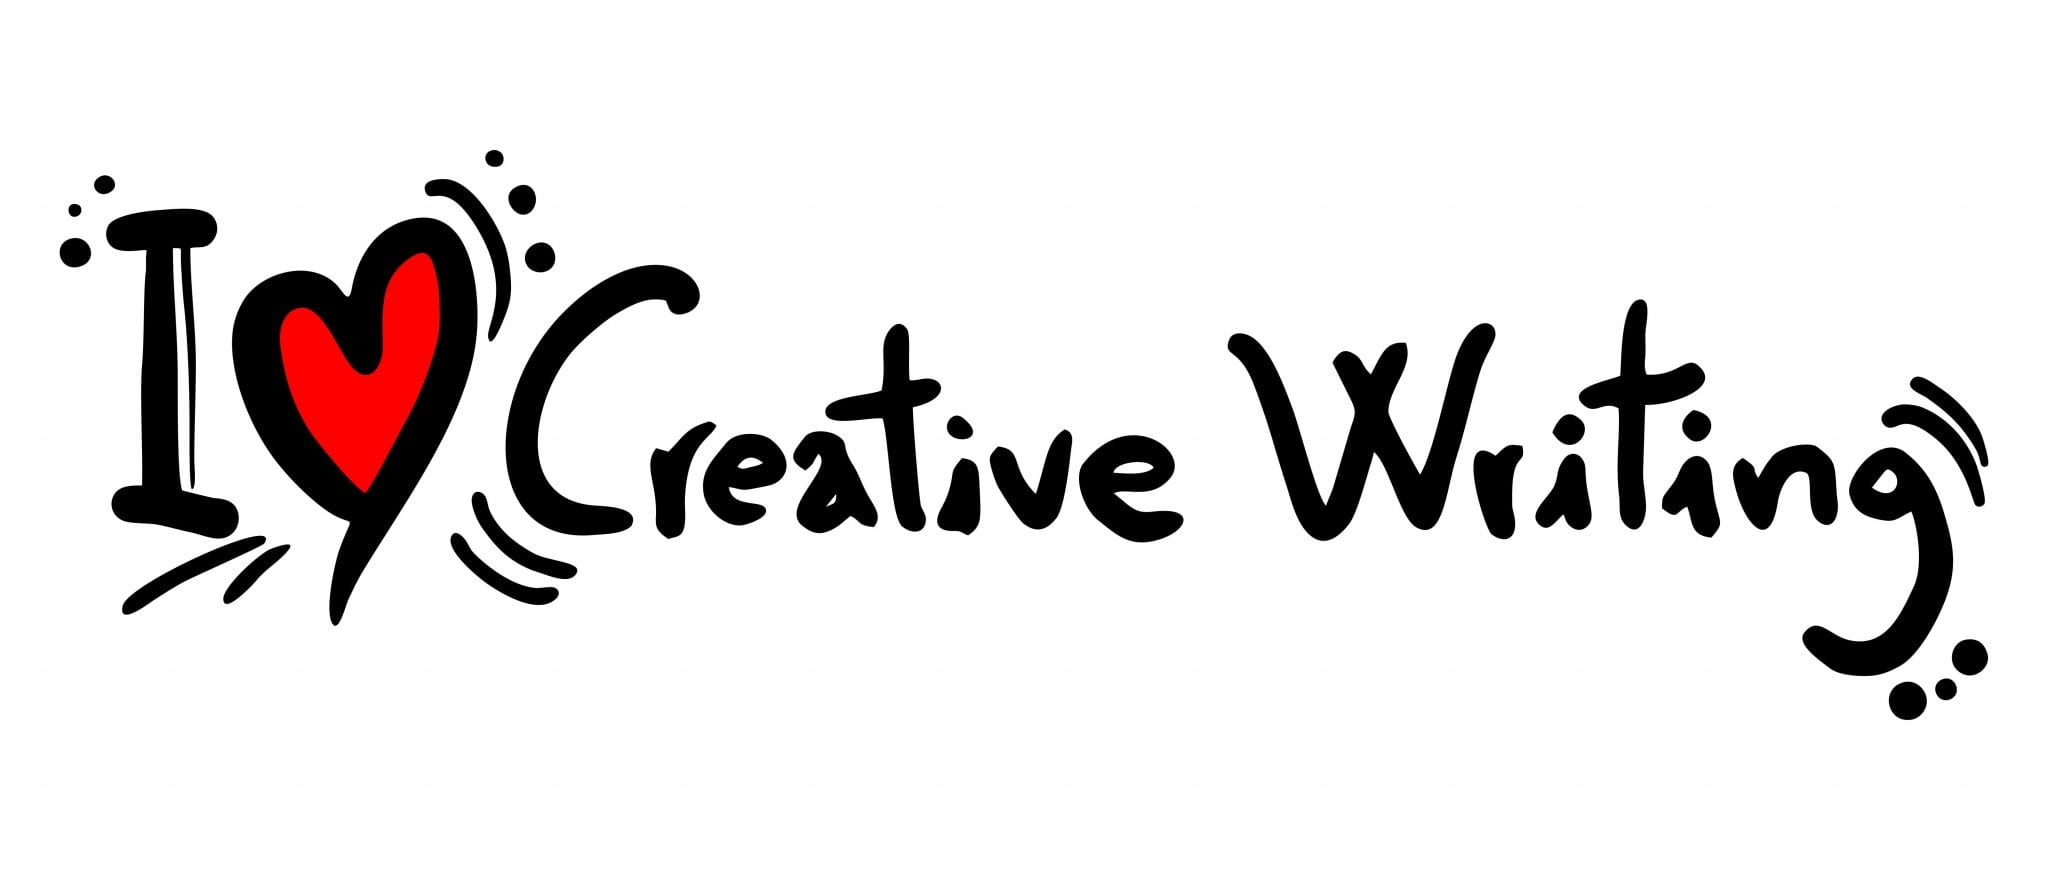 creative writing as a career